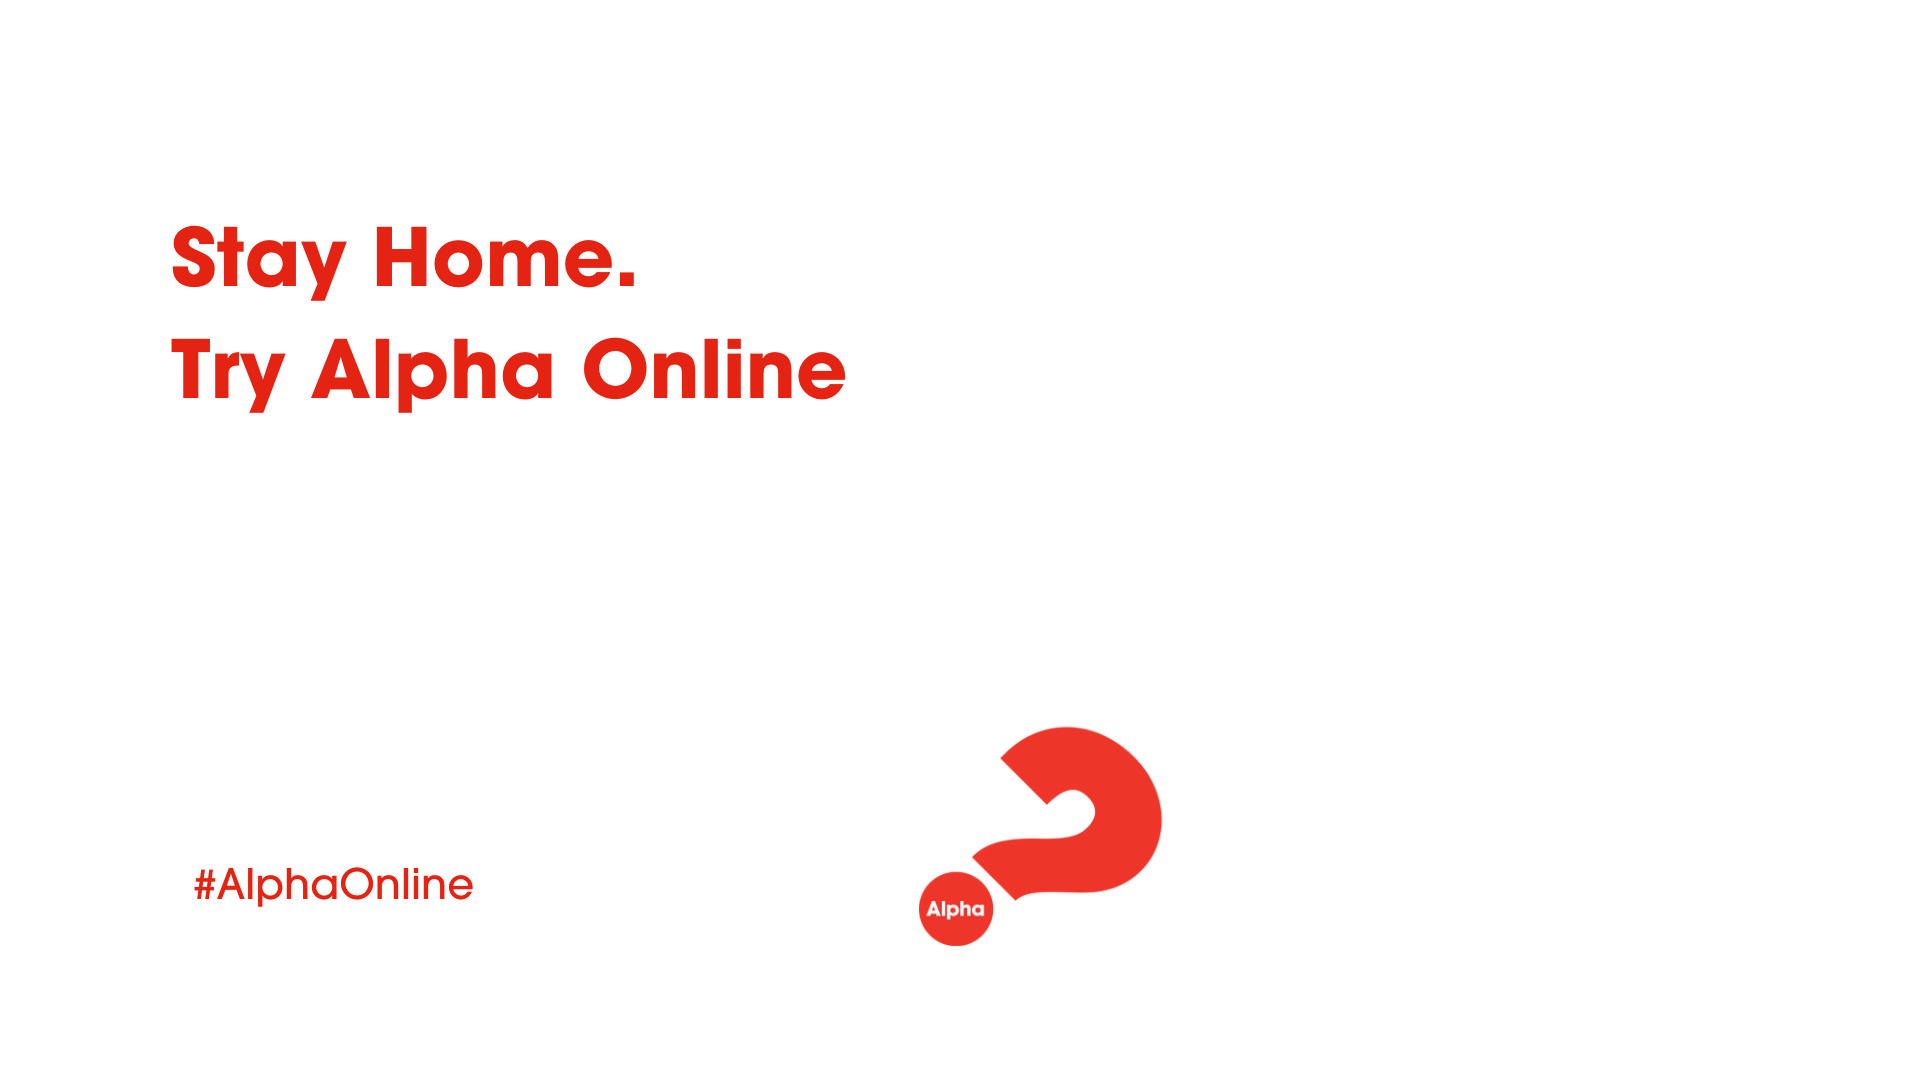 Join us for Alpha Online